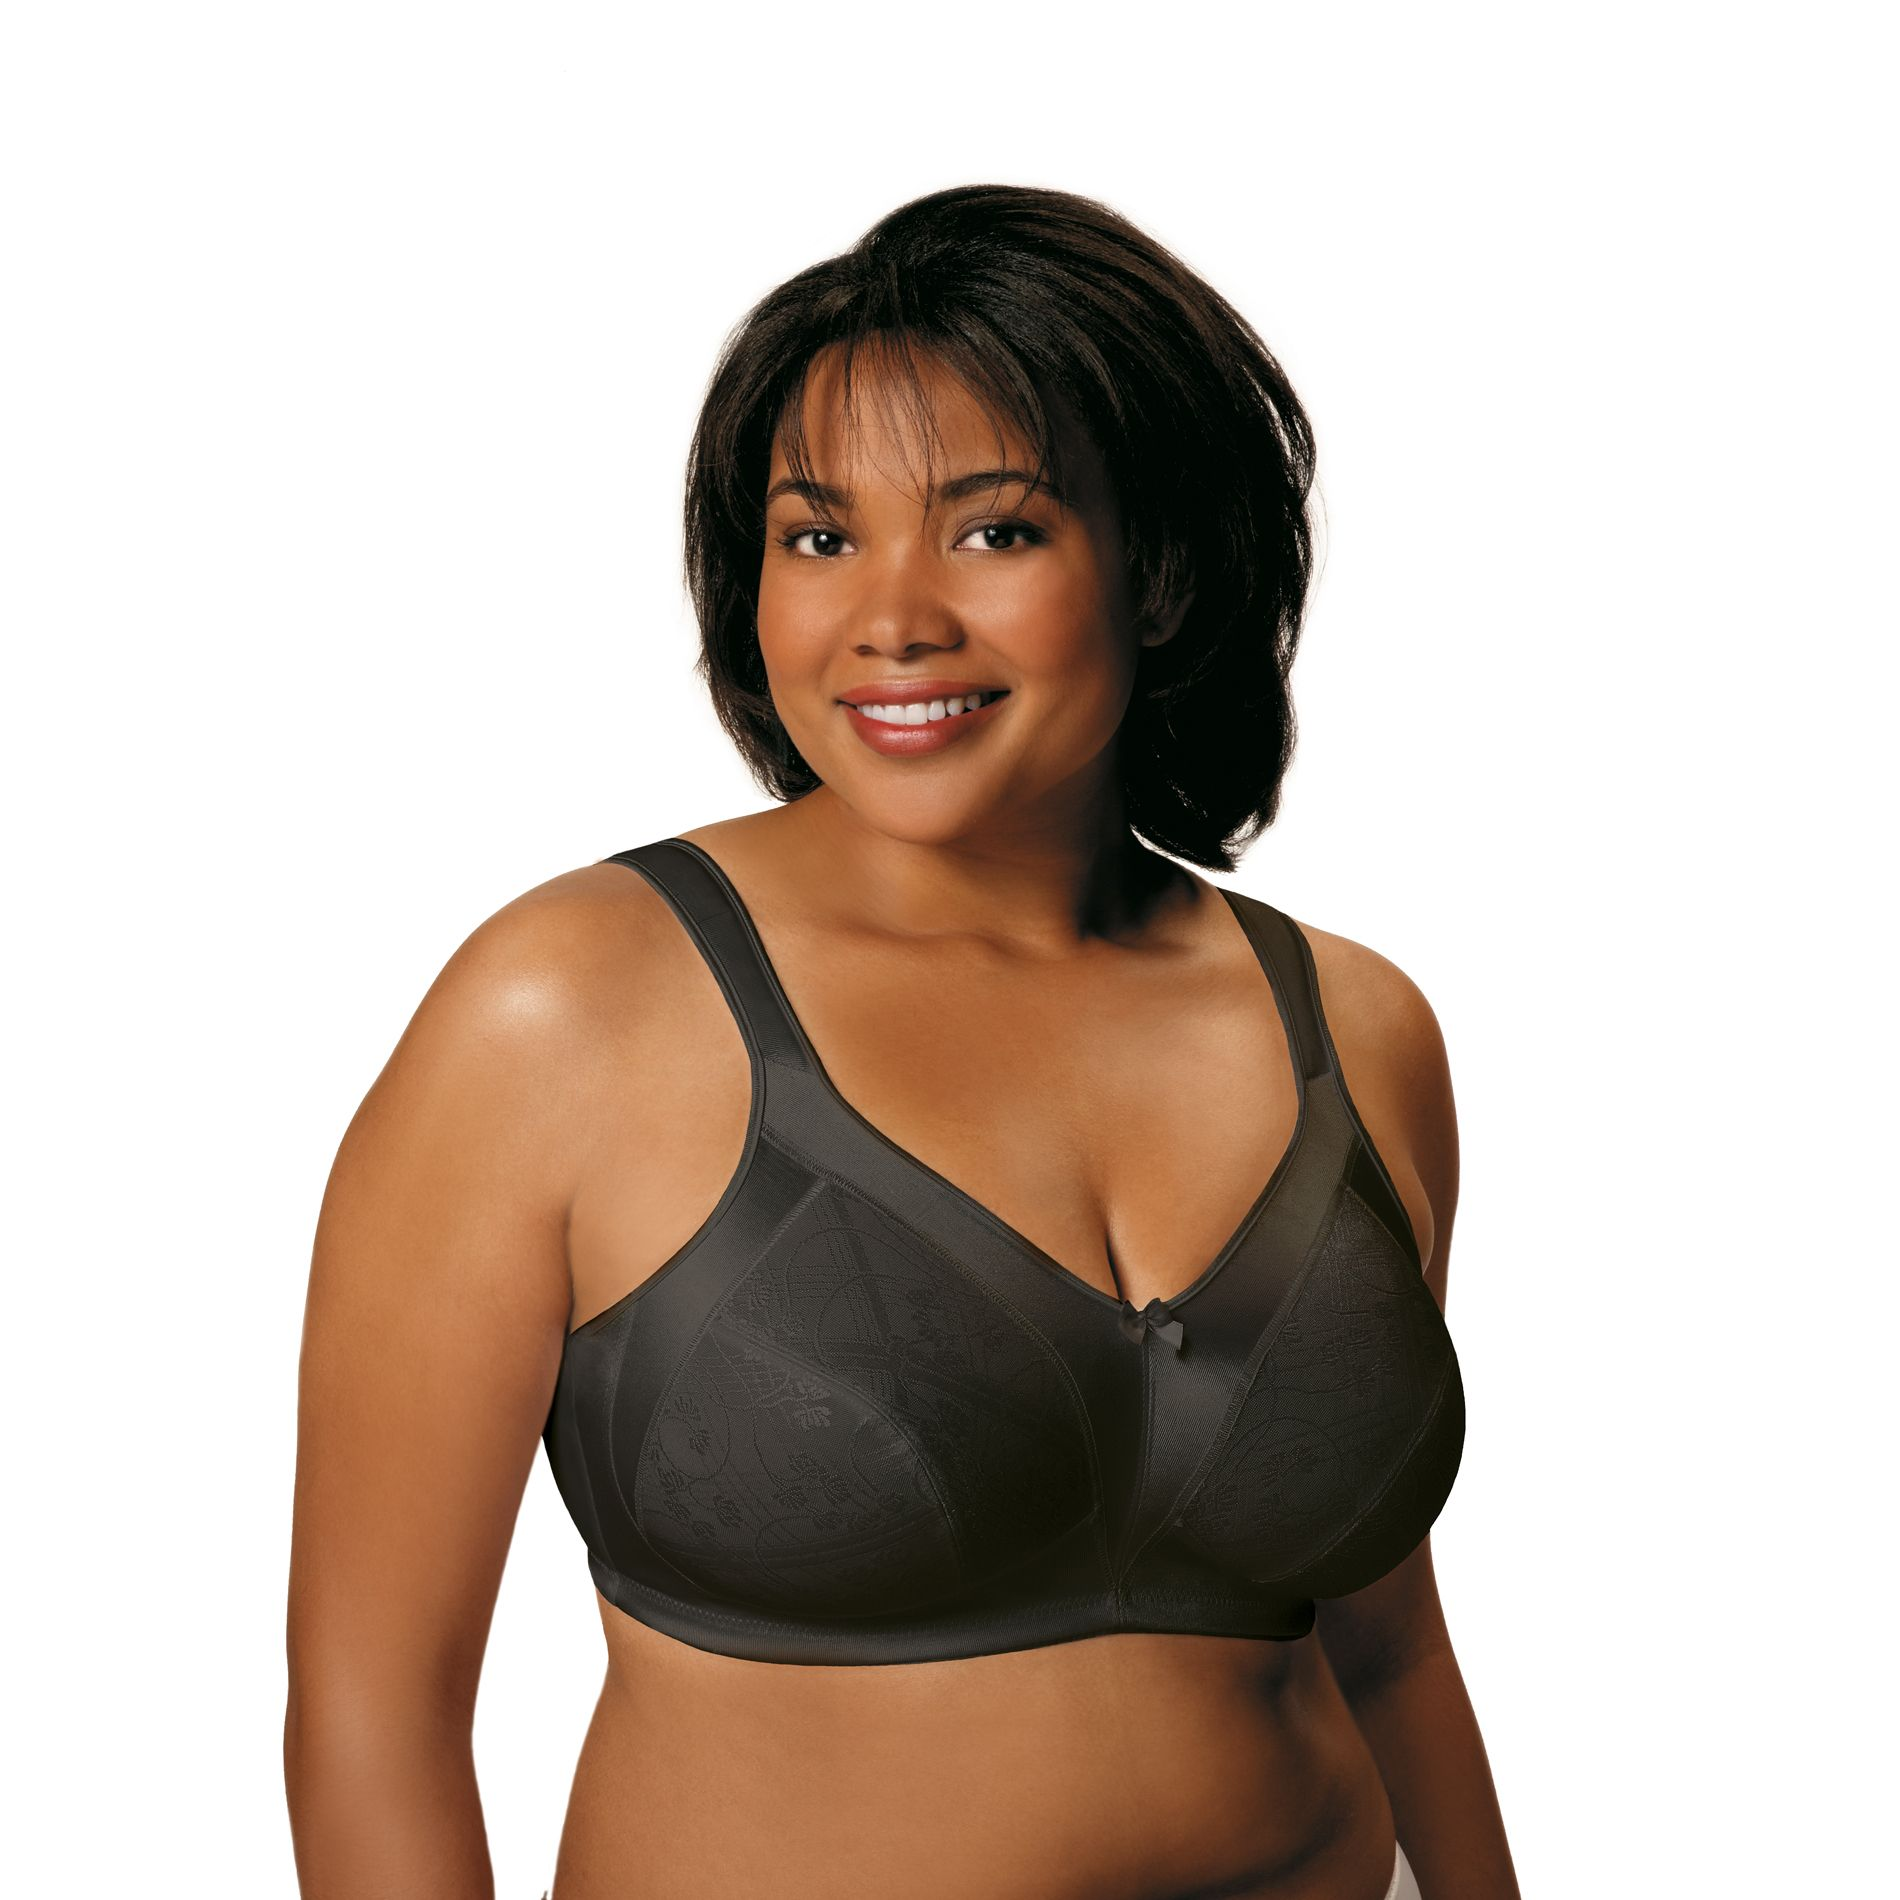 Just My Size Women's Cushion Strap Minimizer Soft Cup Bra #1979 at Kmart.com